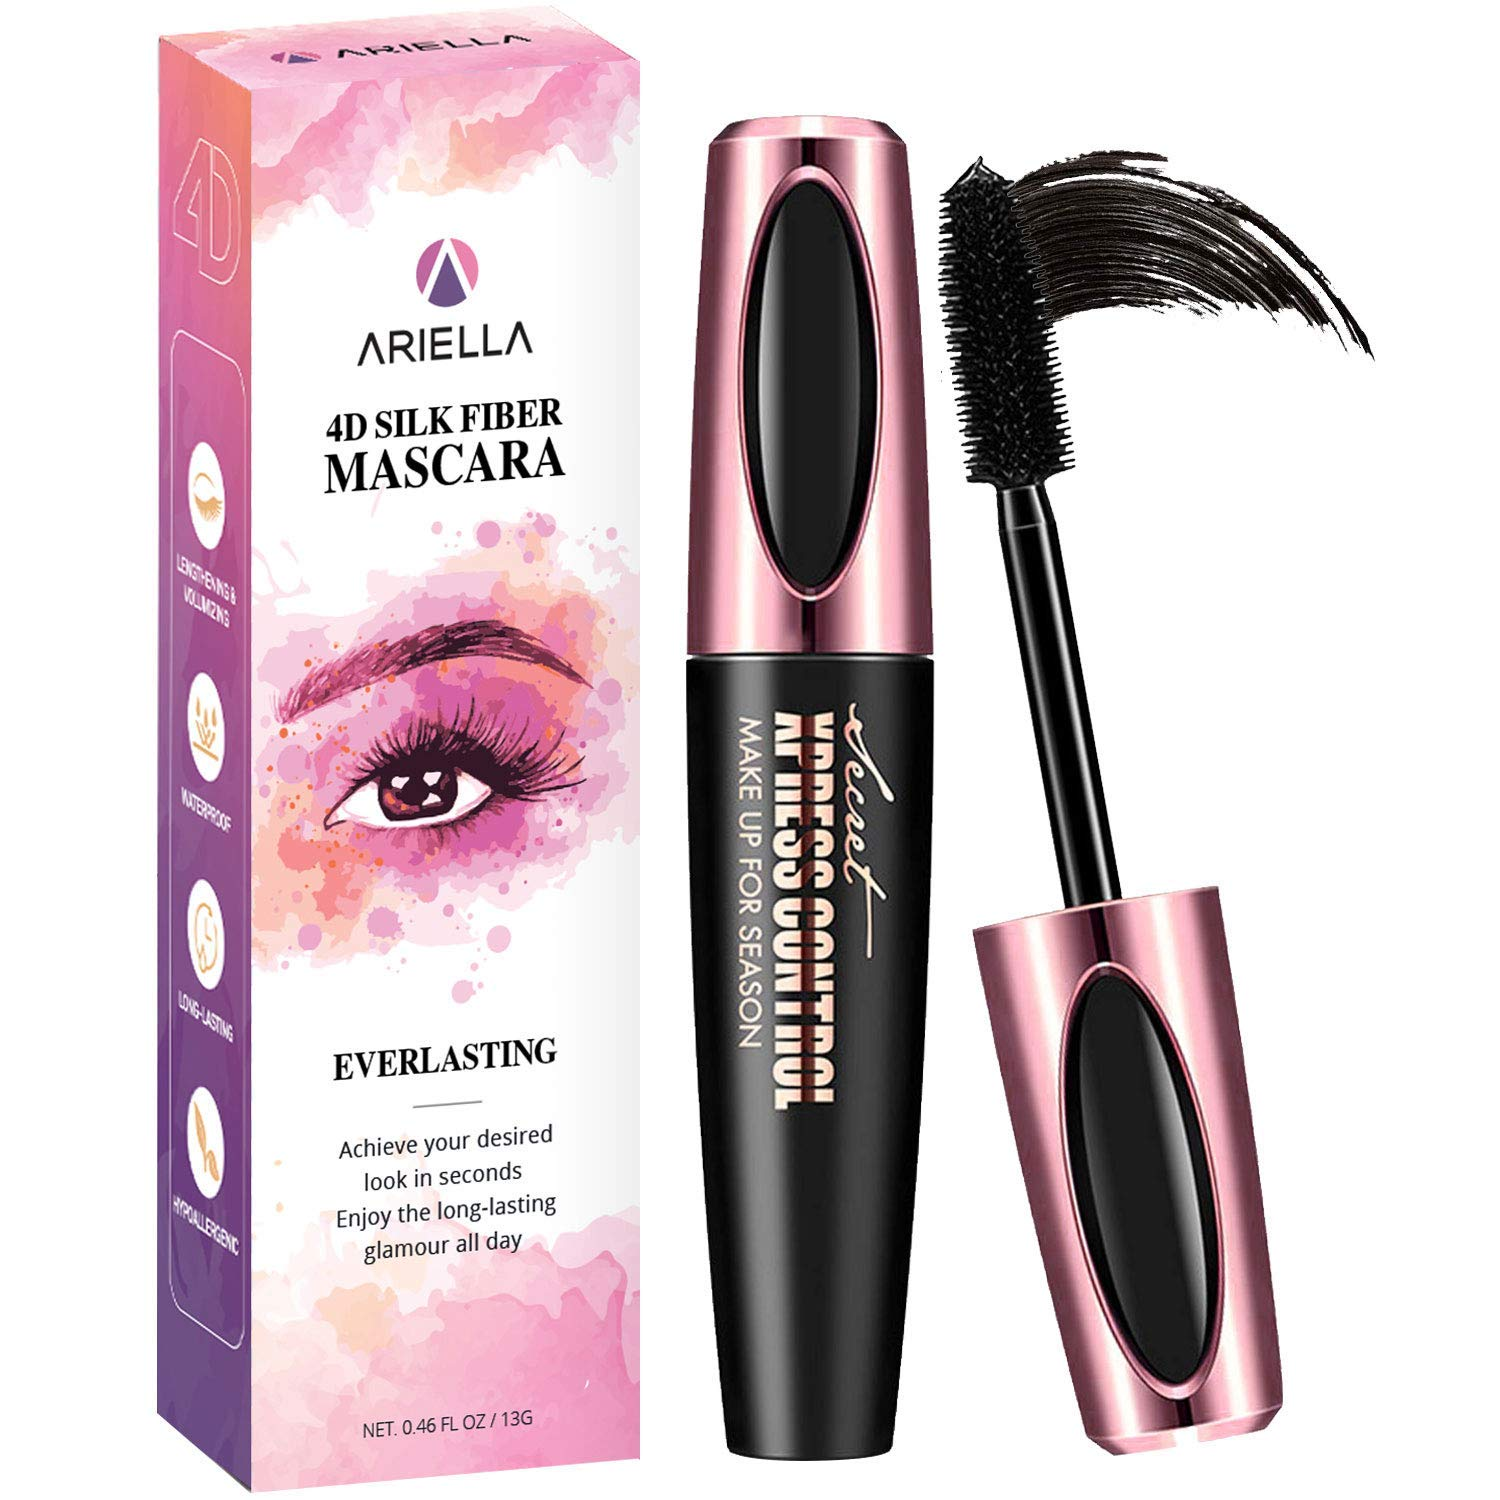 6f6c9c73044 Natural 4D Silk Fiber Lash Mascara, Waterproof & Smudge-Proof, All Day  Exquisitely Lush, Full, Long, Thick, Smudge-Proof Eyelashes